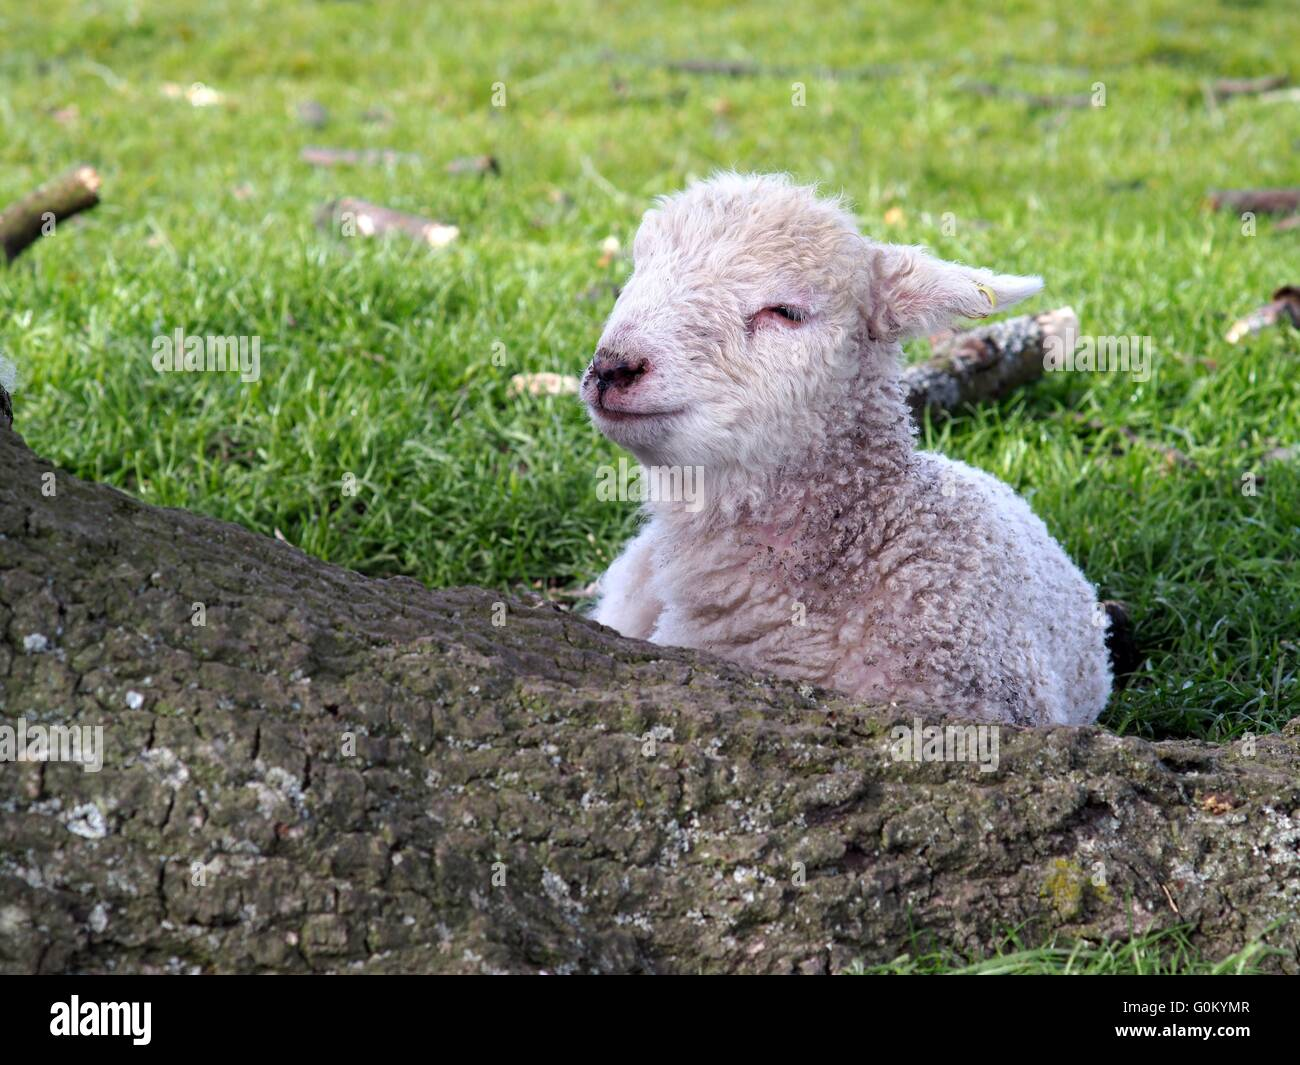 Cute Spring baby lamb sleeping in the shade of a tree Stock Photo ... for baby lamb in spring  284dqh